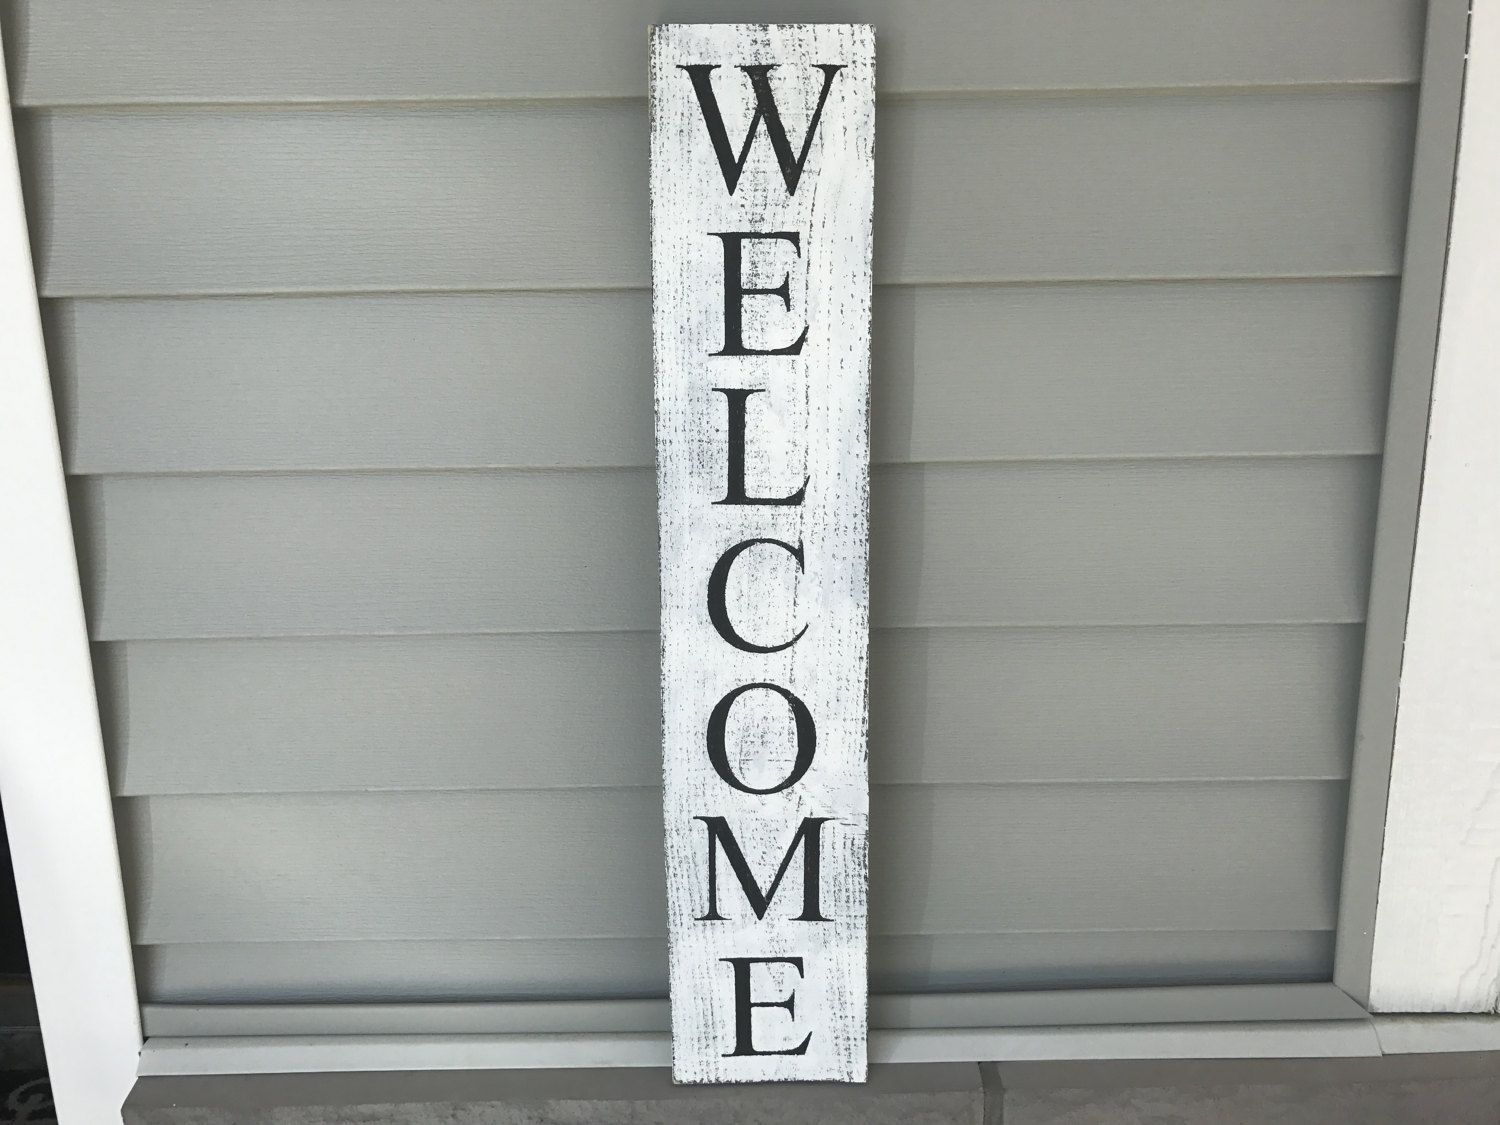 Vertical Welcome Sign Farmhouse Country Wall Art Rustic Black And White Wood Porch Signage Entryway By Country Wall Art Wooden Welcome Signs Rustic Black